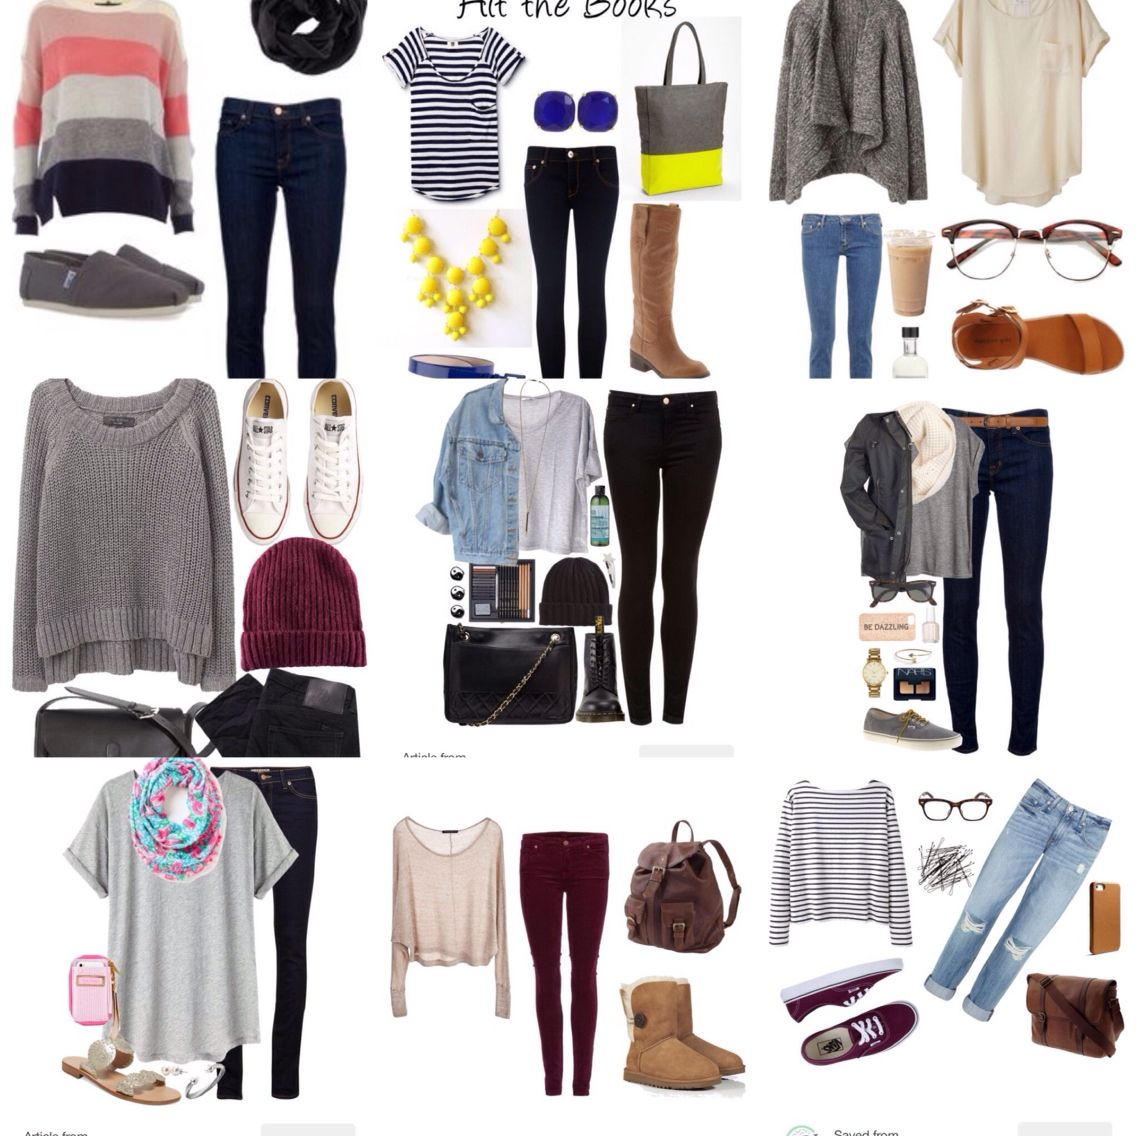 20 Easy and Cute Fashion Clothing Style Tips To Improve Your Wardrobe